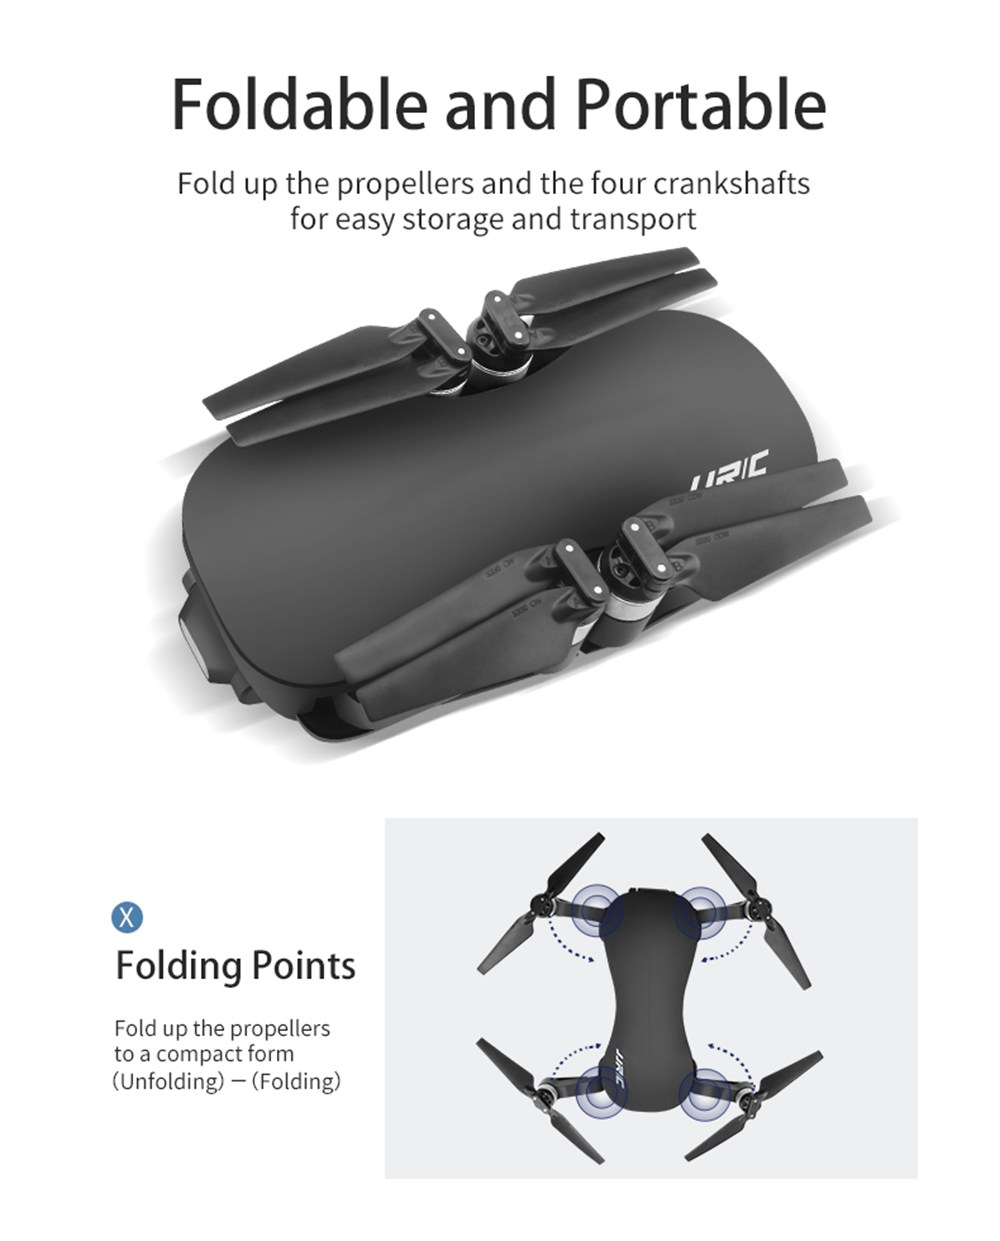 JJRC X12 AURORA 5G WIFI 1.2km FPV GPS Foldable RC Drone With 1080P 3Axis Gimbal Ultrasonic Optical Flow Positioning RTF - Two Batteries With Bag